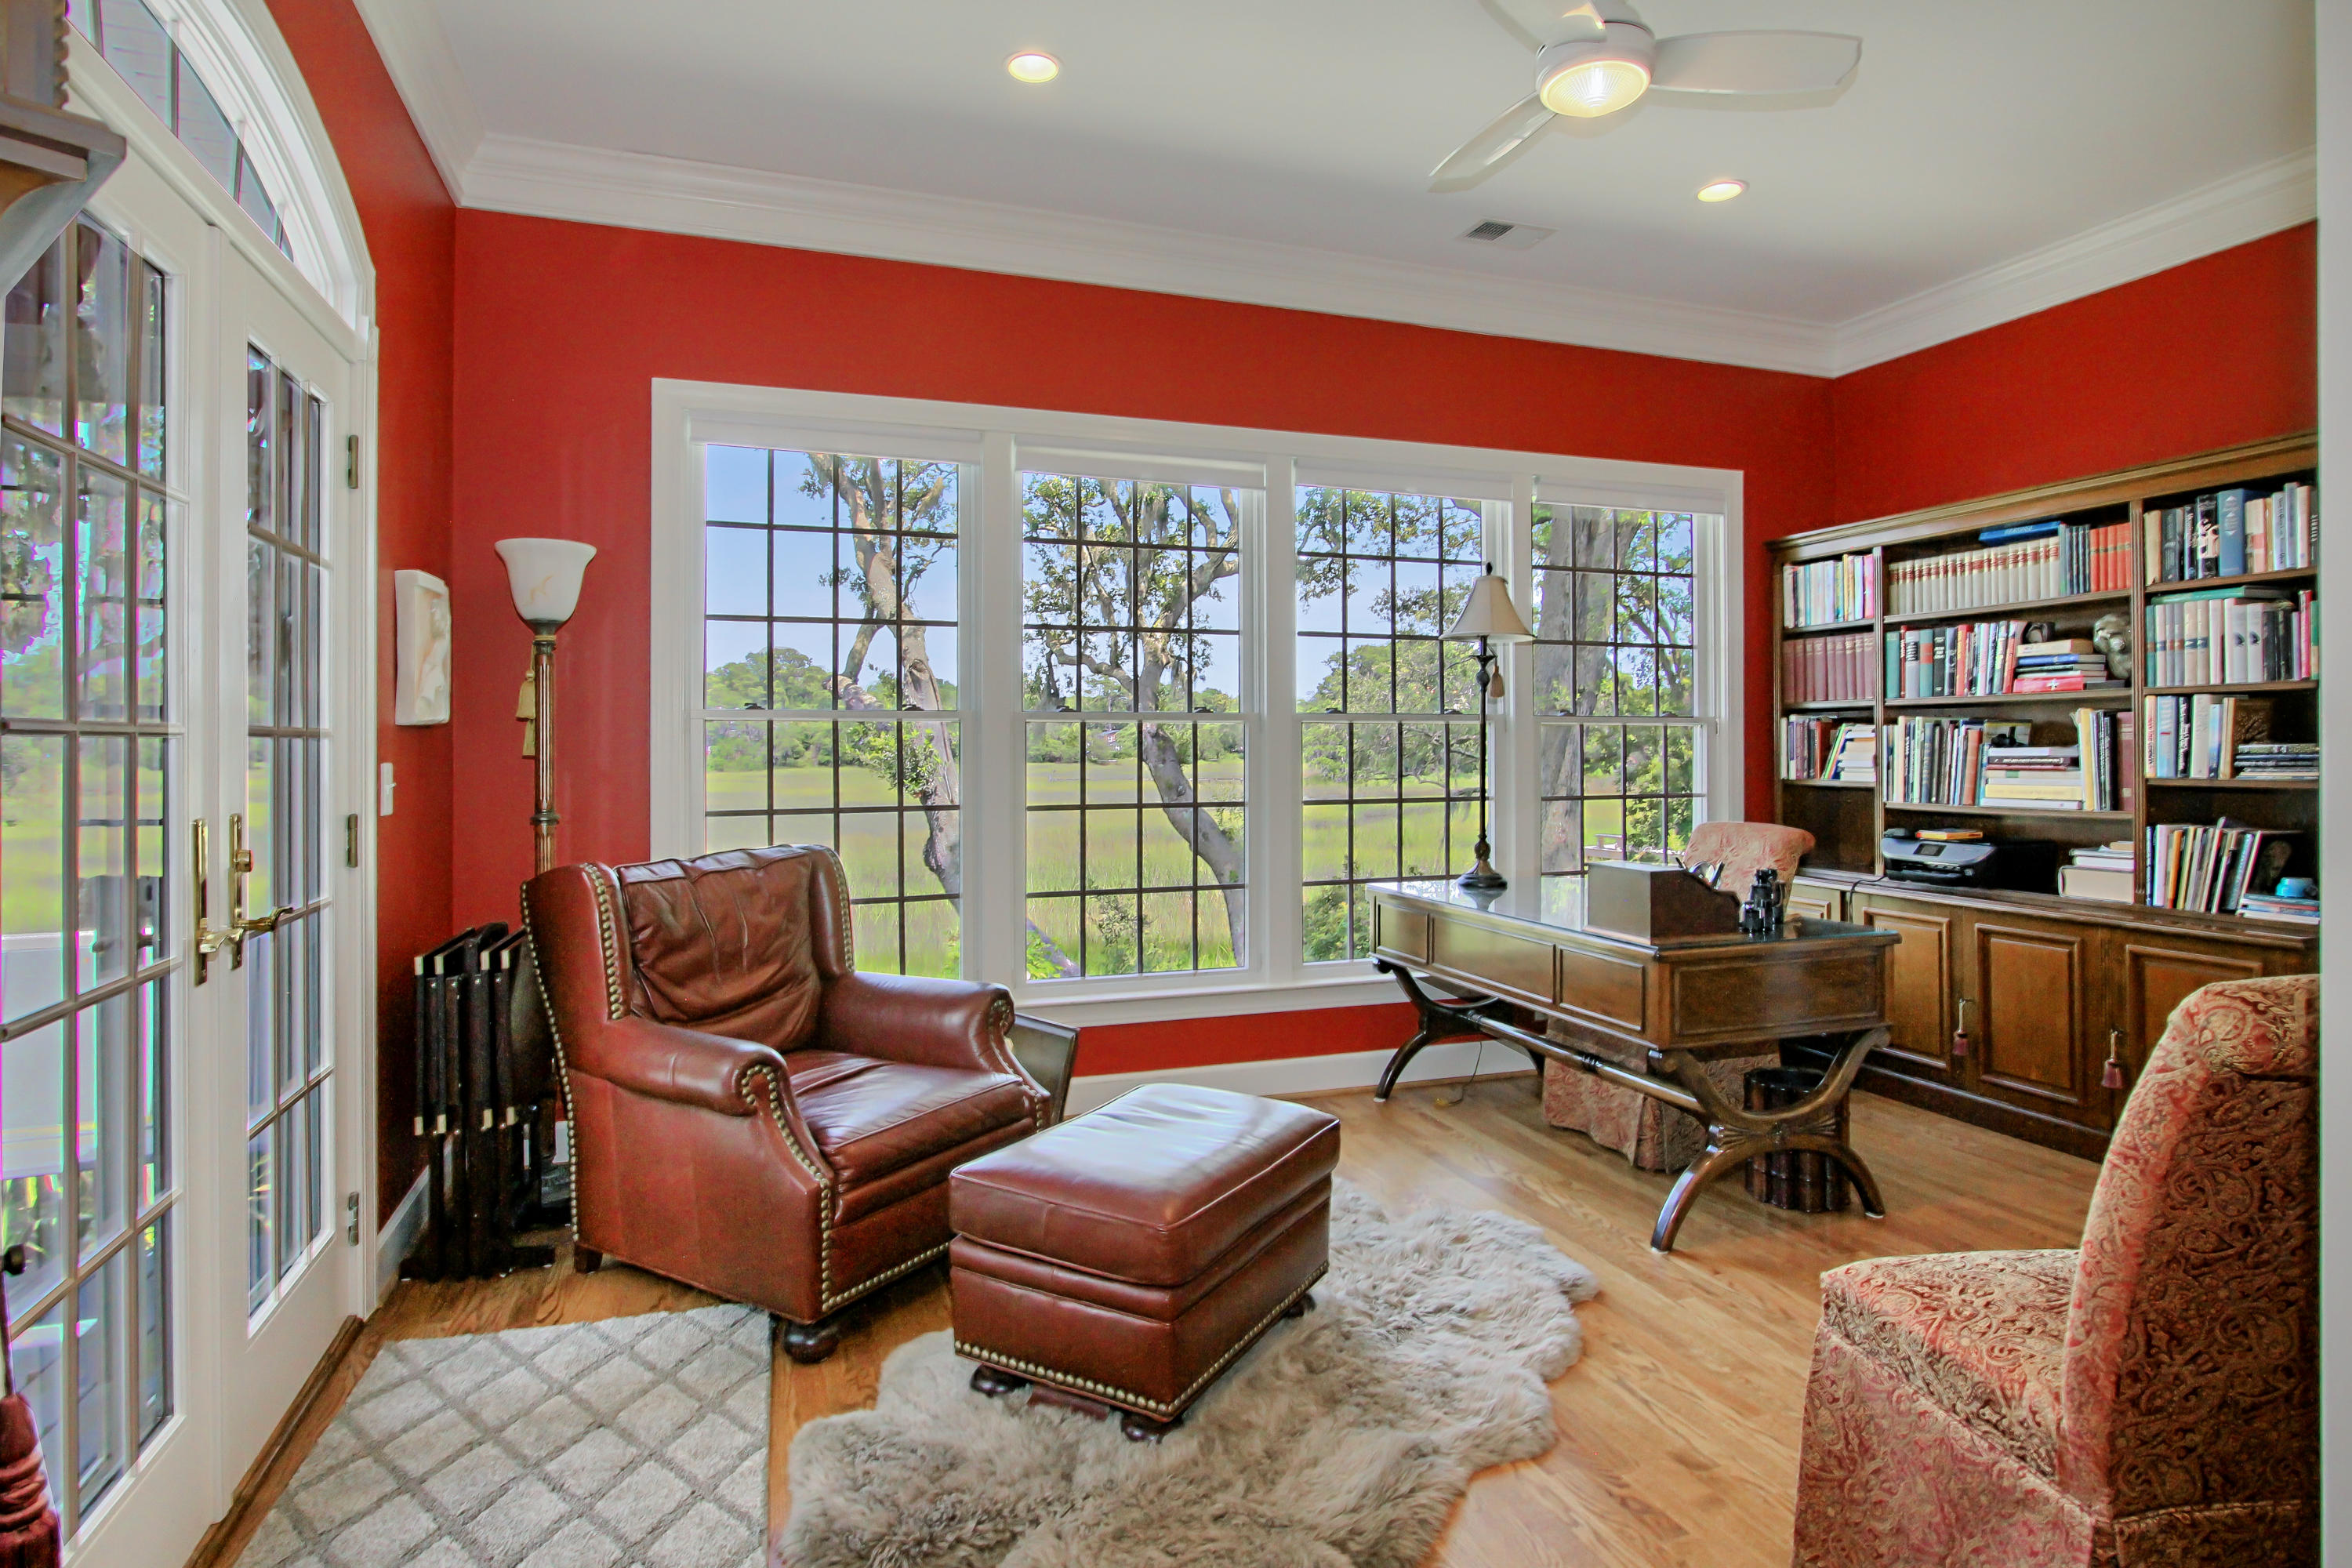 Stiles Point Plantation Homes For Sale - 837 Whispering Marsh, Charleston, SC - 14